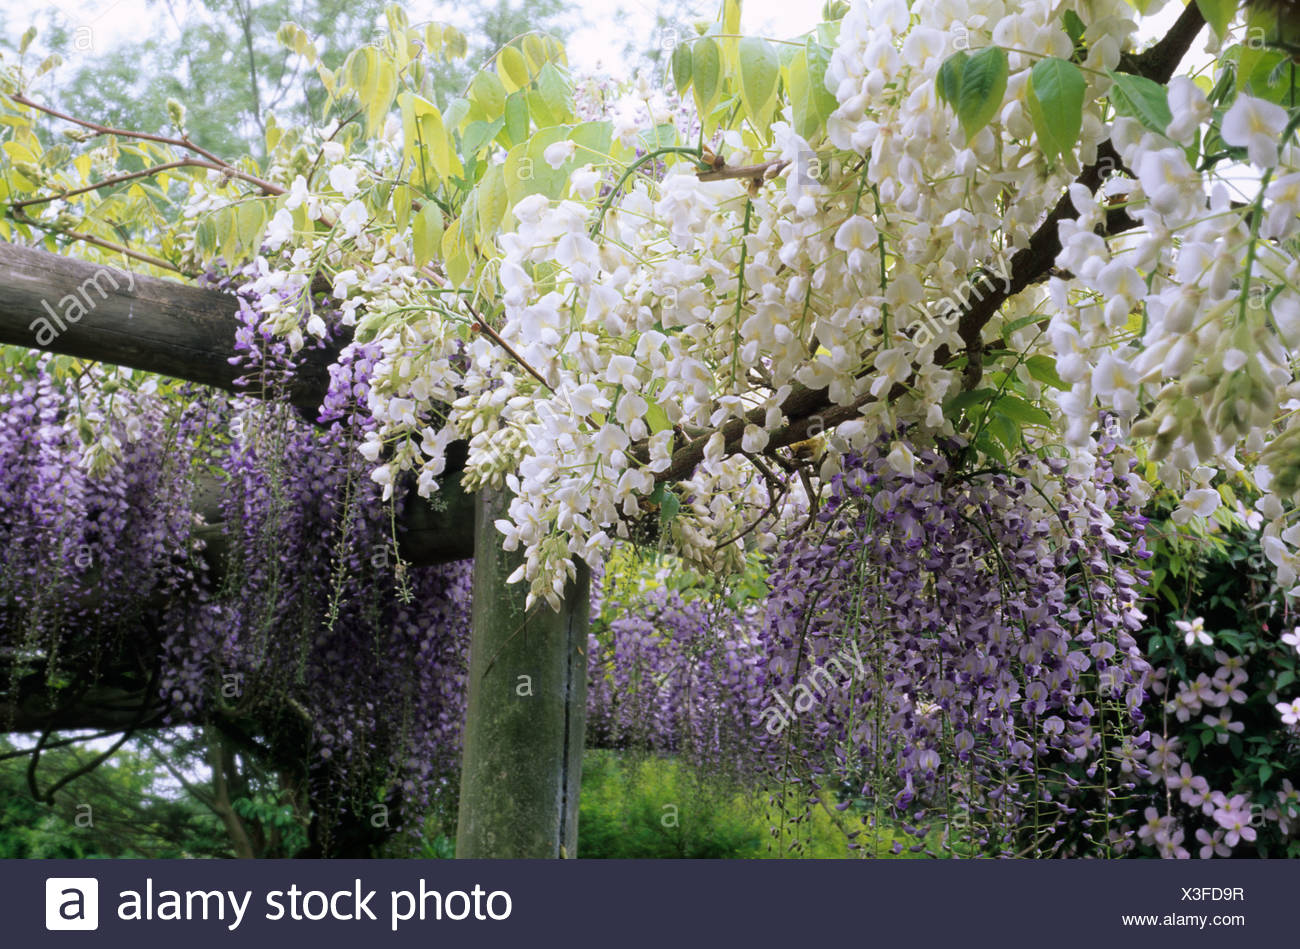 Pergola With Climbing White And Purple Wisteria Flowers Garden